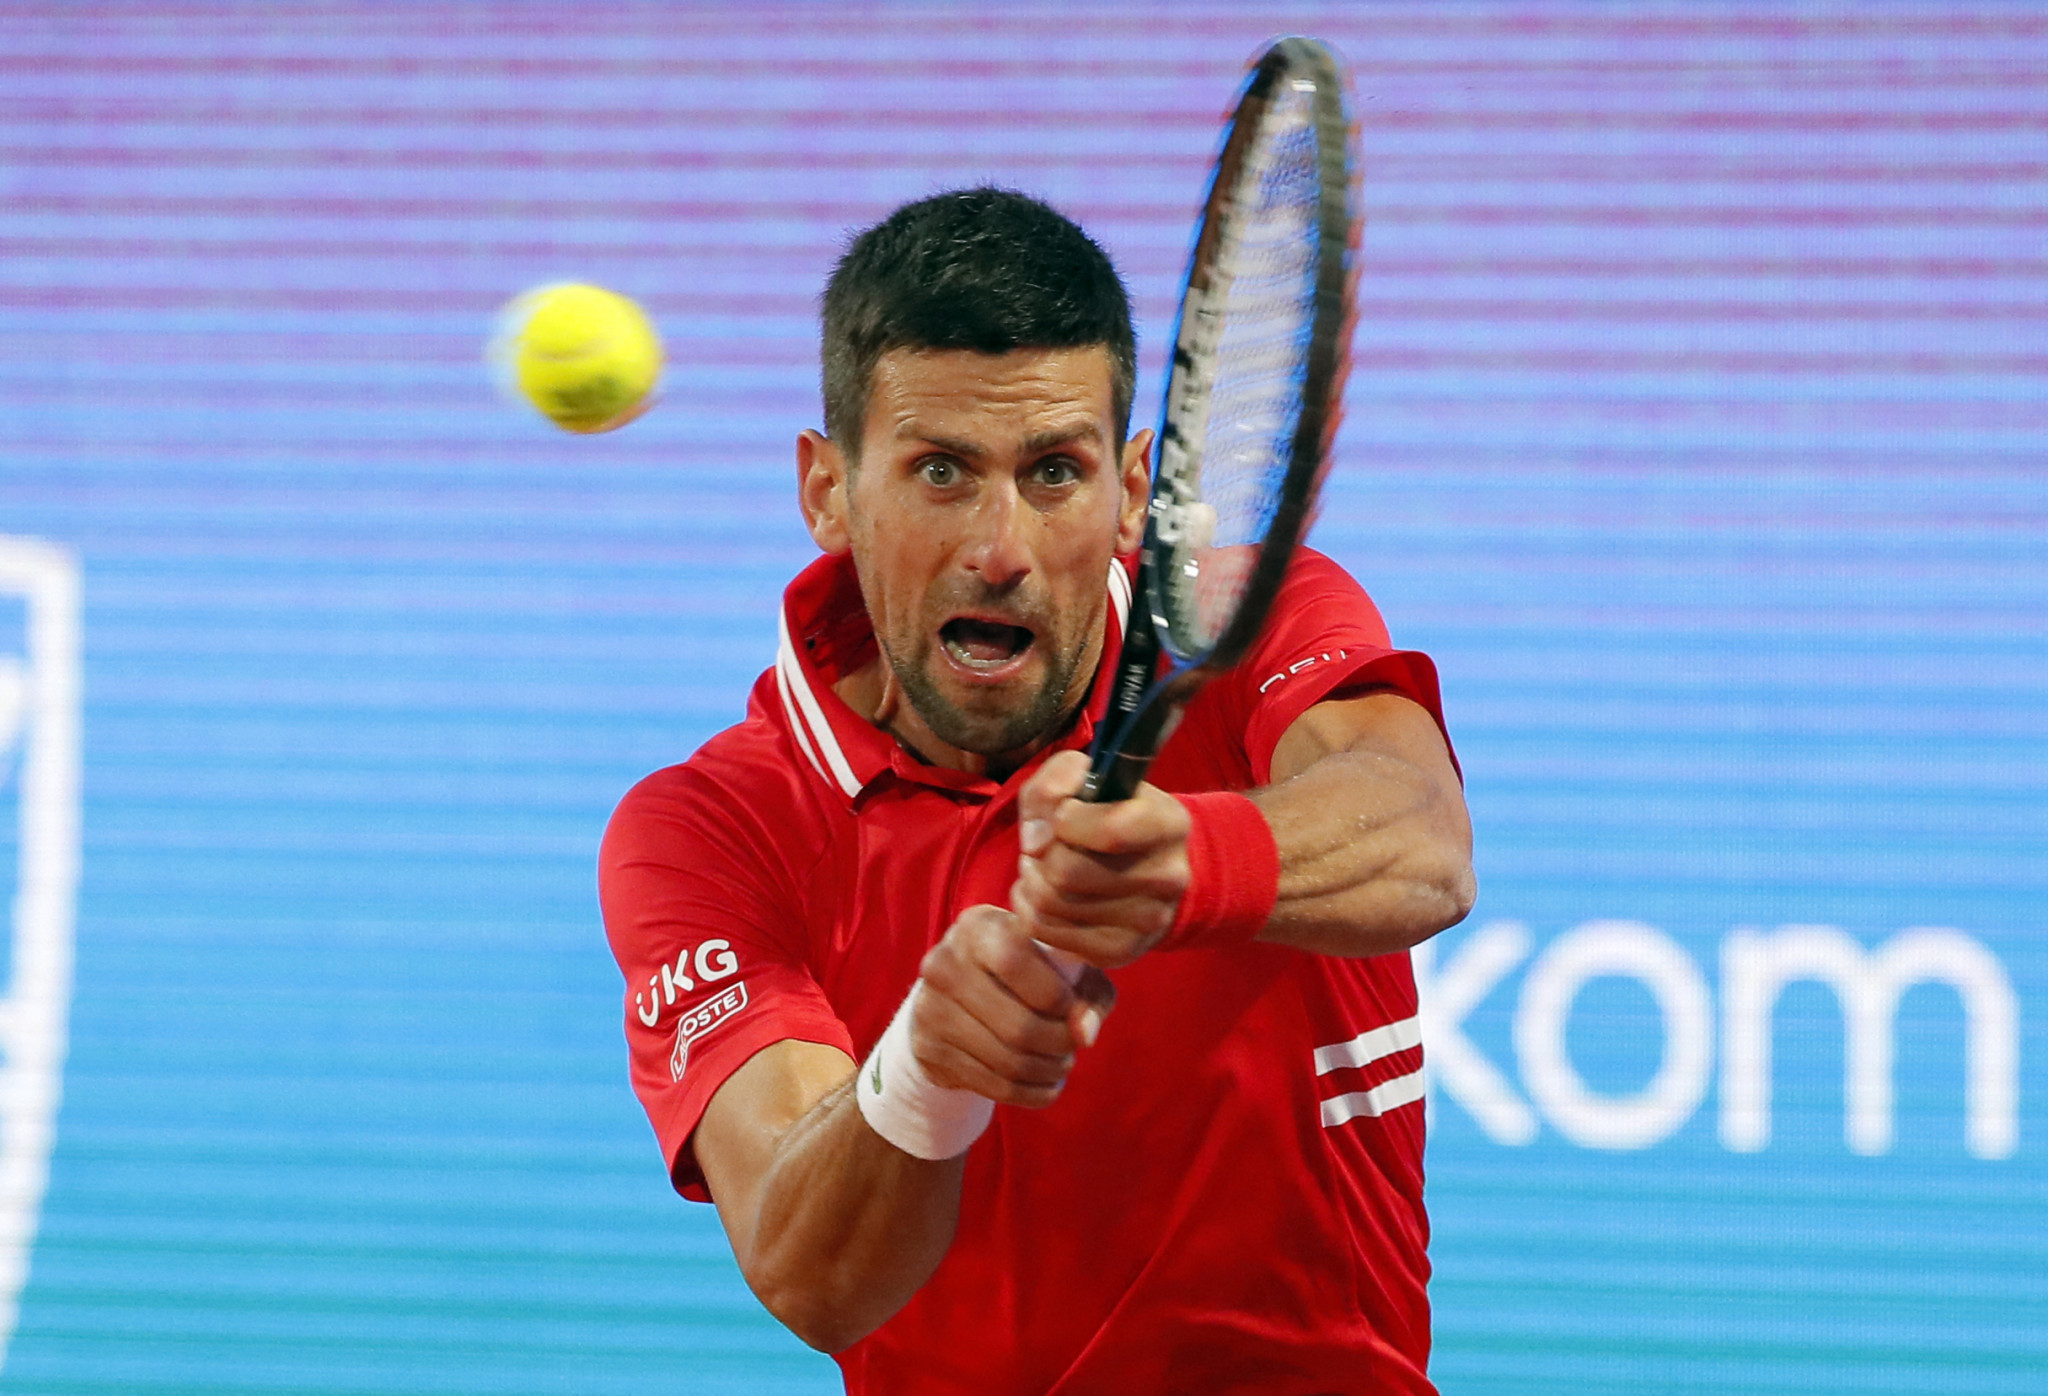 Djokovic withdraws from Madrid Open as Svitolina suffers early exit